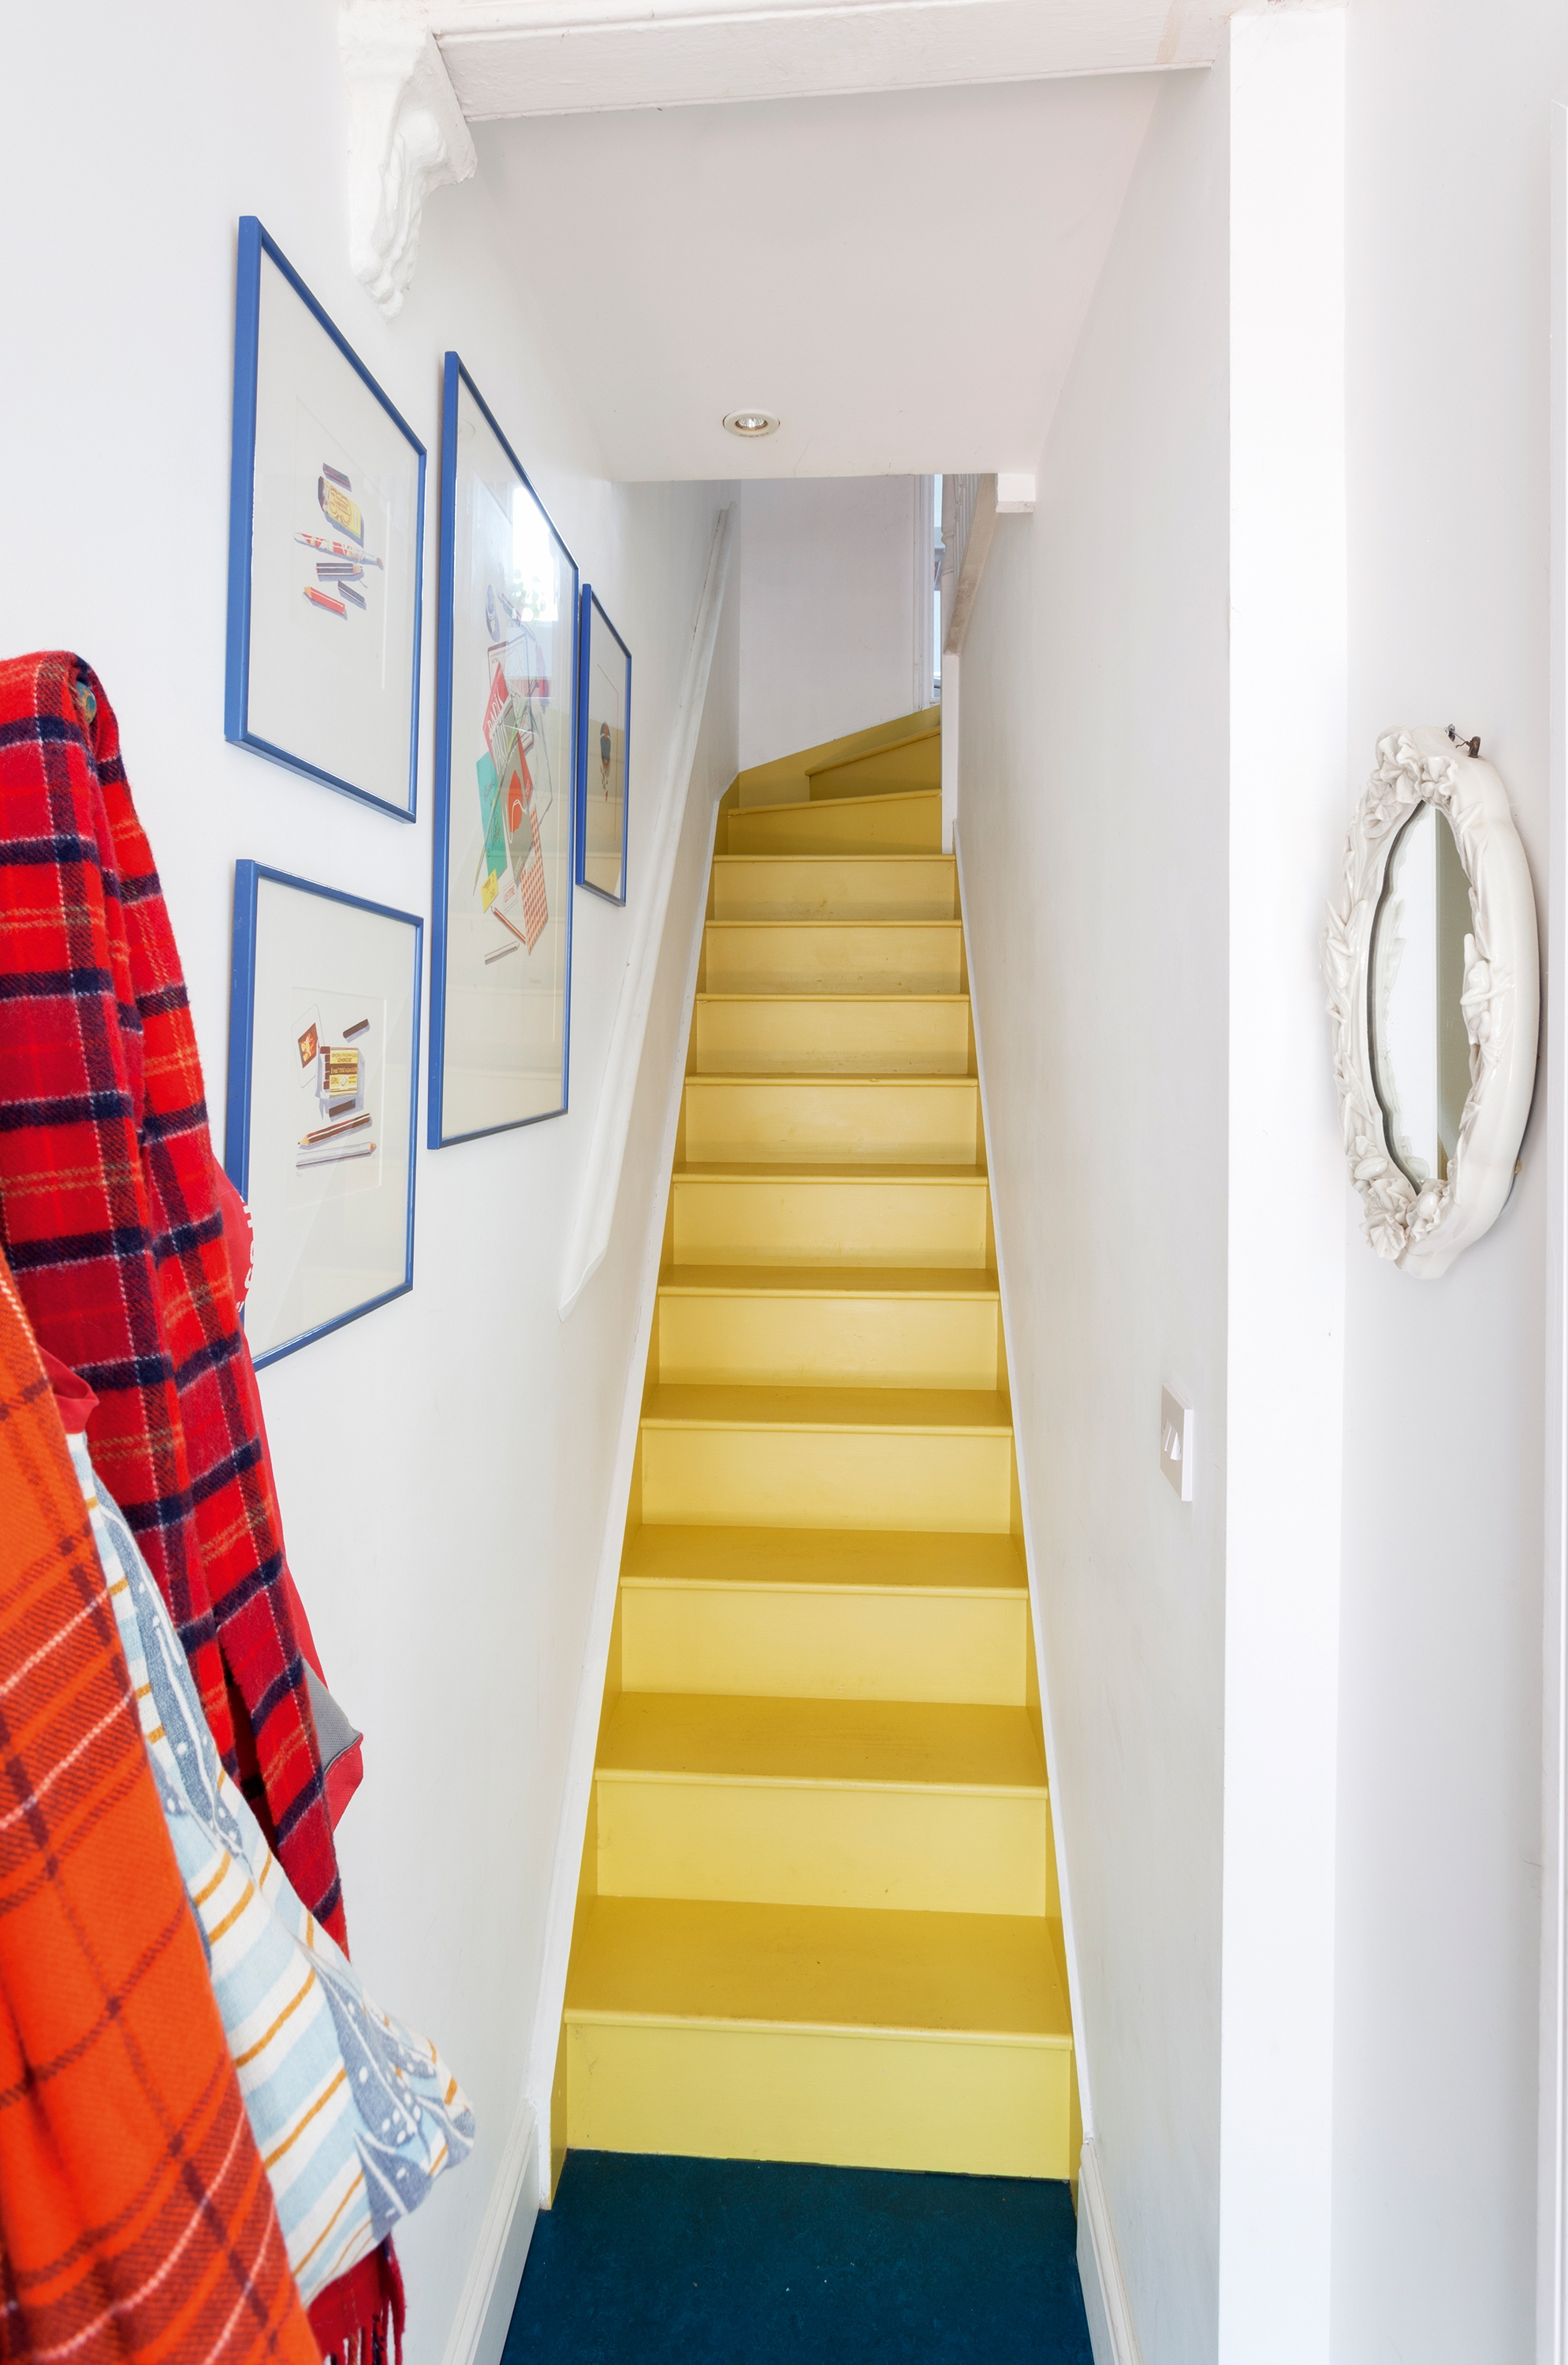 Painting Stairs 10 Ideas And Tips On How To Update Your Stairs | Stripping Stairs Back To Wood | Paint Remover | Stair Risers | Stair Treads | Steps | Hardwood